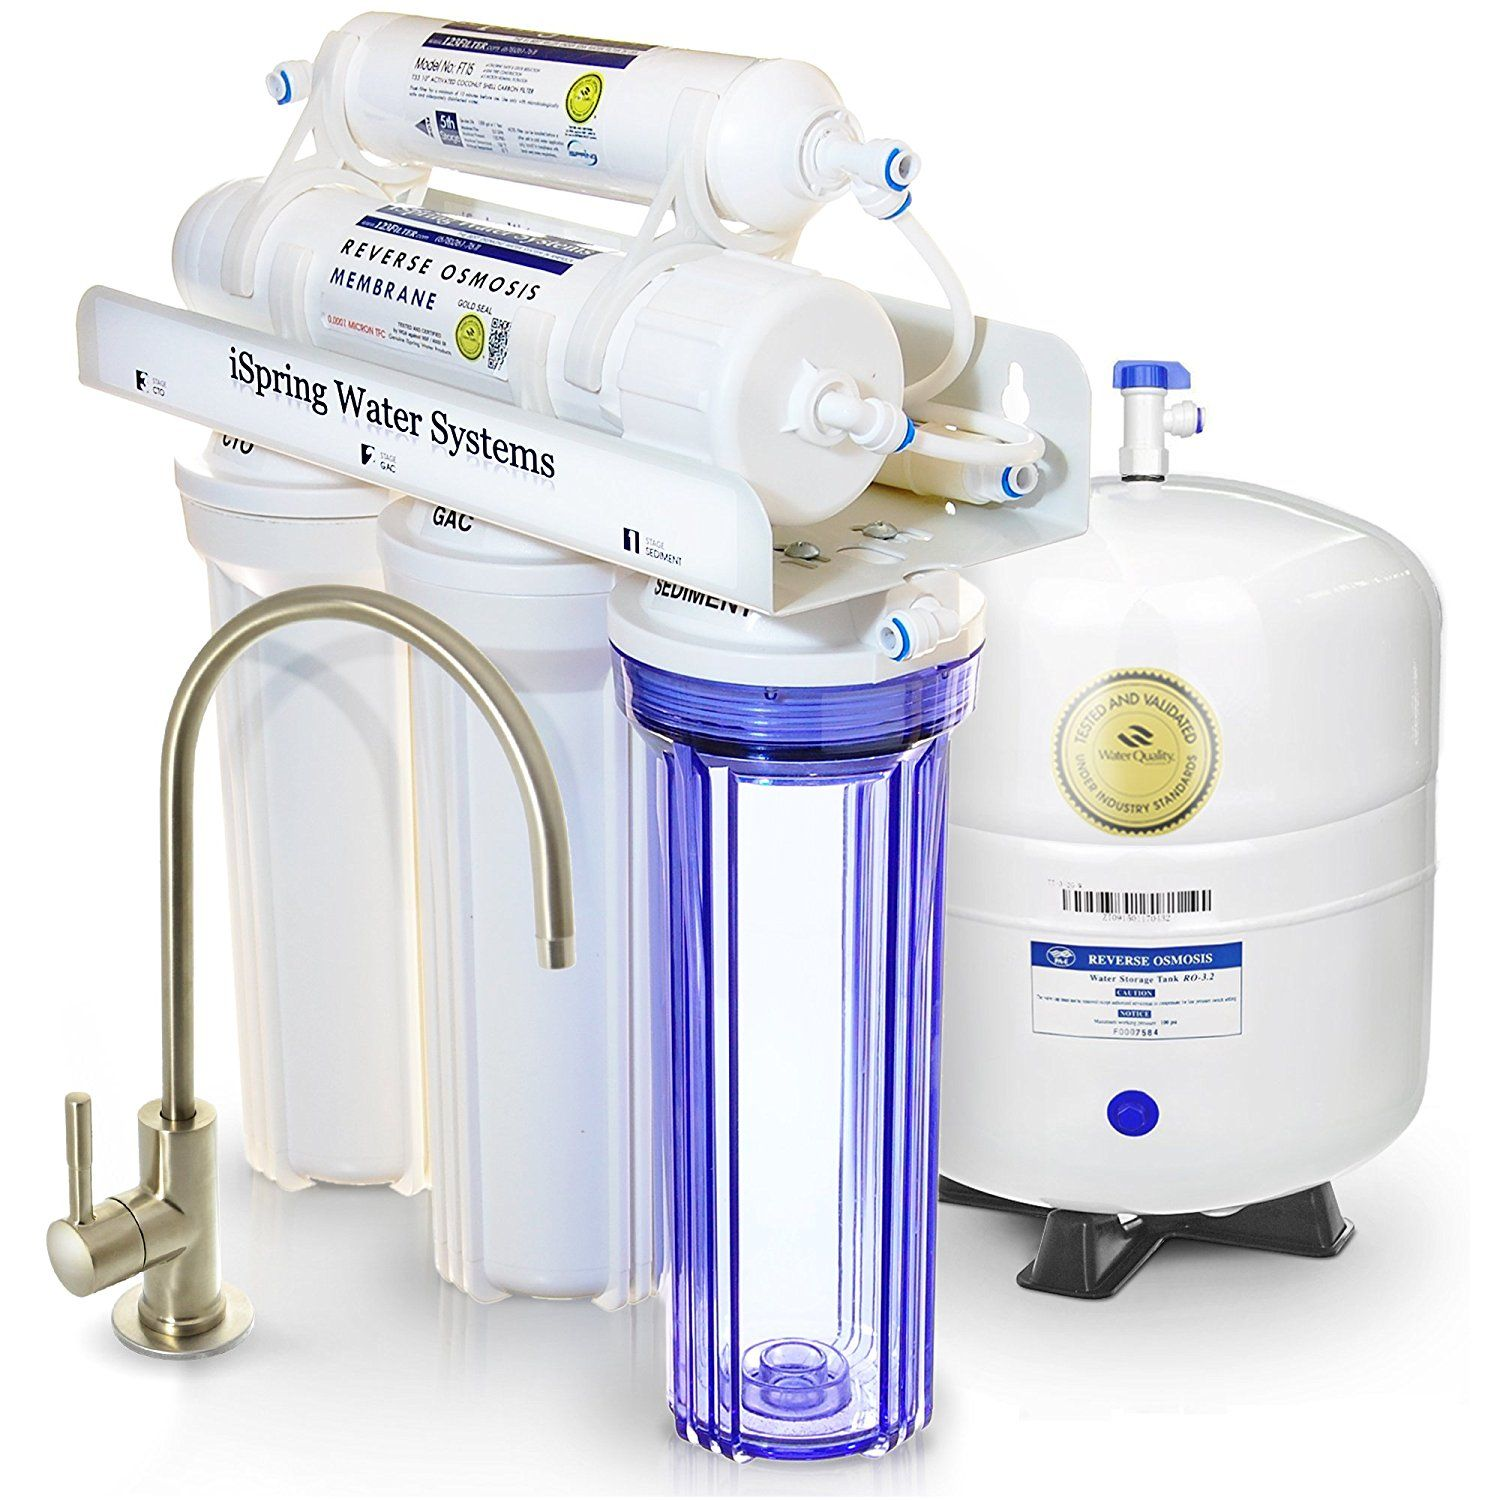 Ispring Rcc7 Under Sink Ro Water Filtration System Review Best Water Filter Reviews Countertop Water Filter Sink Water Filter Under Sink Water Filter